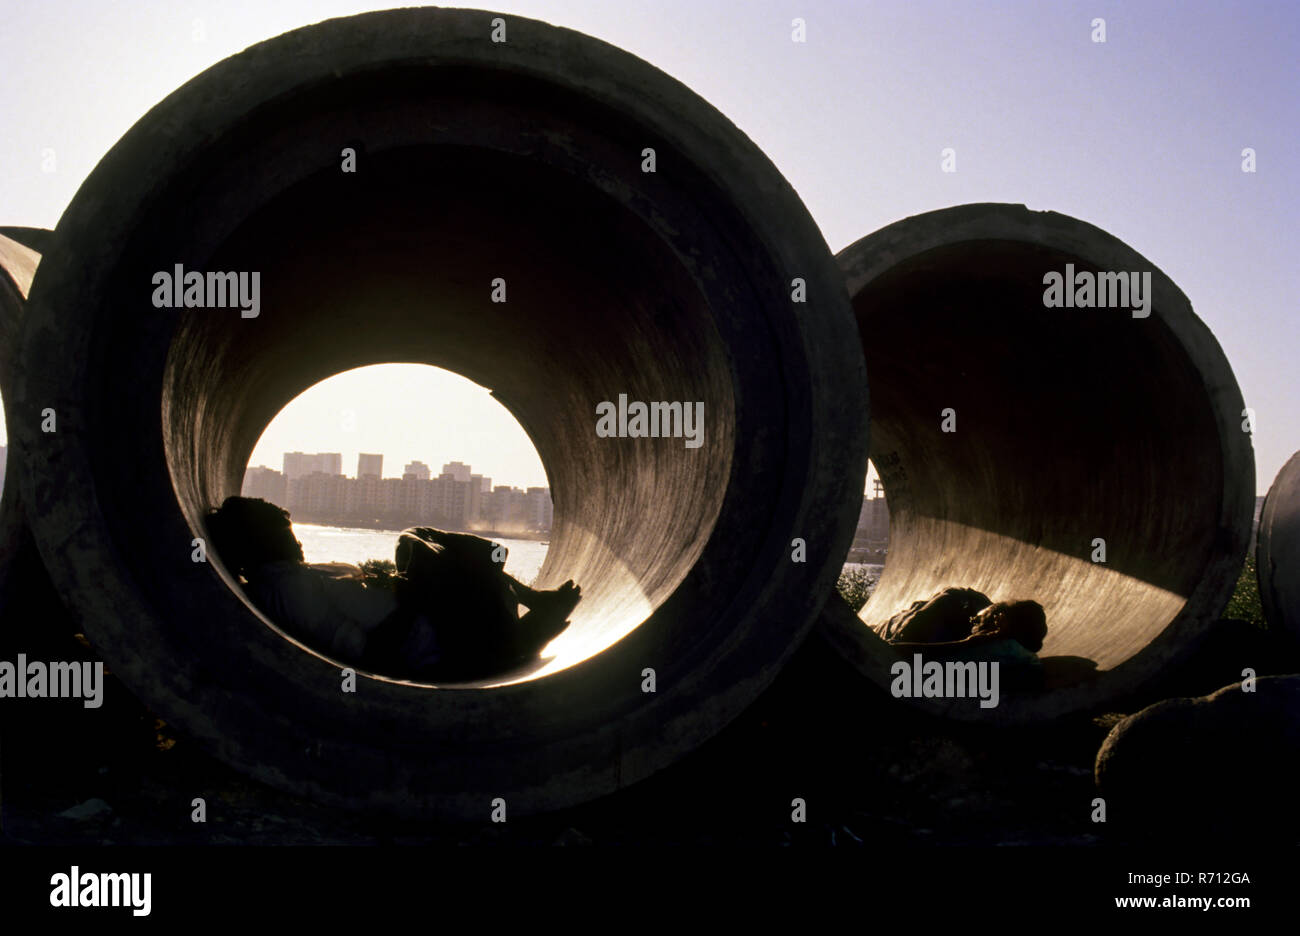 Sleeping In Drainage Pipe - Stock Image